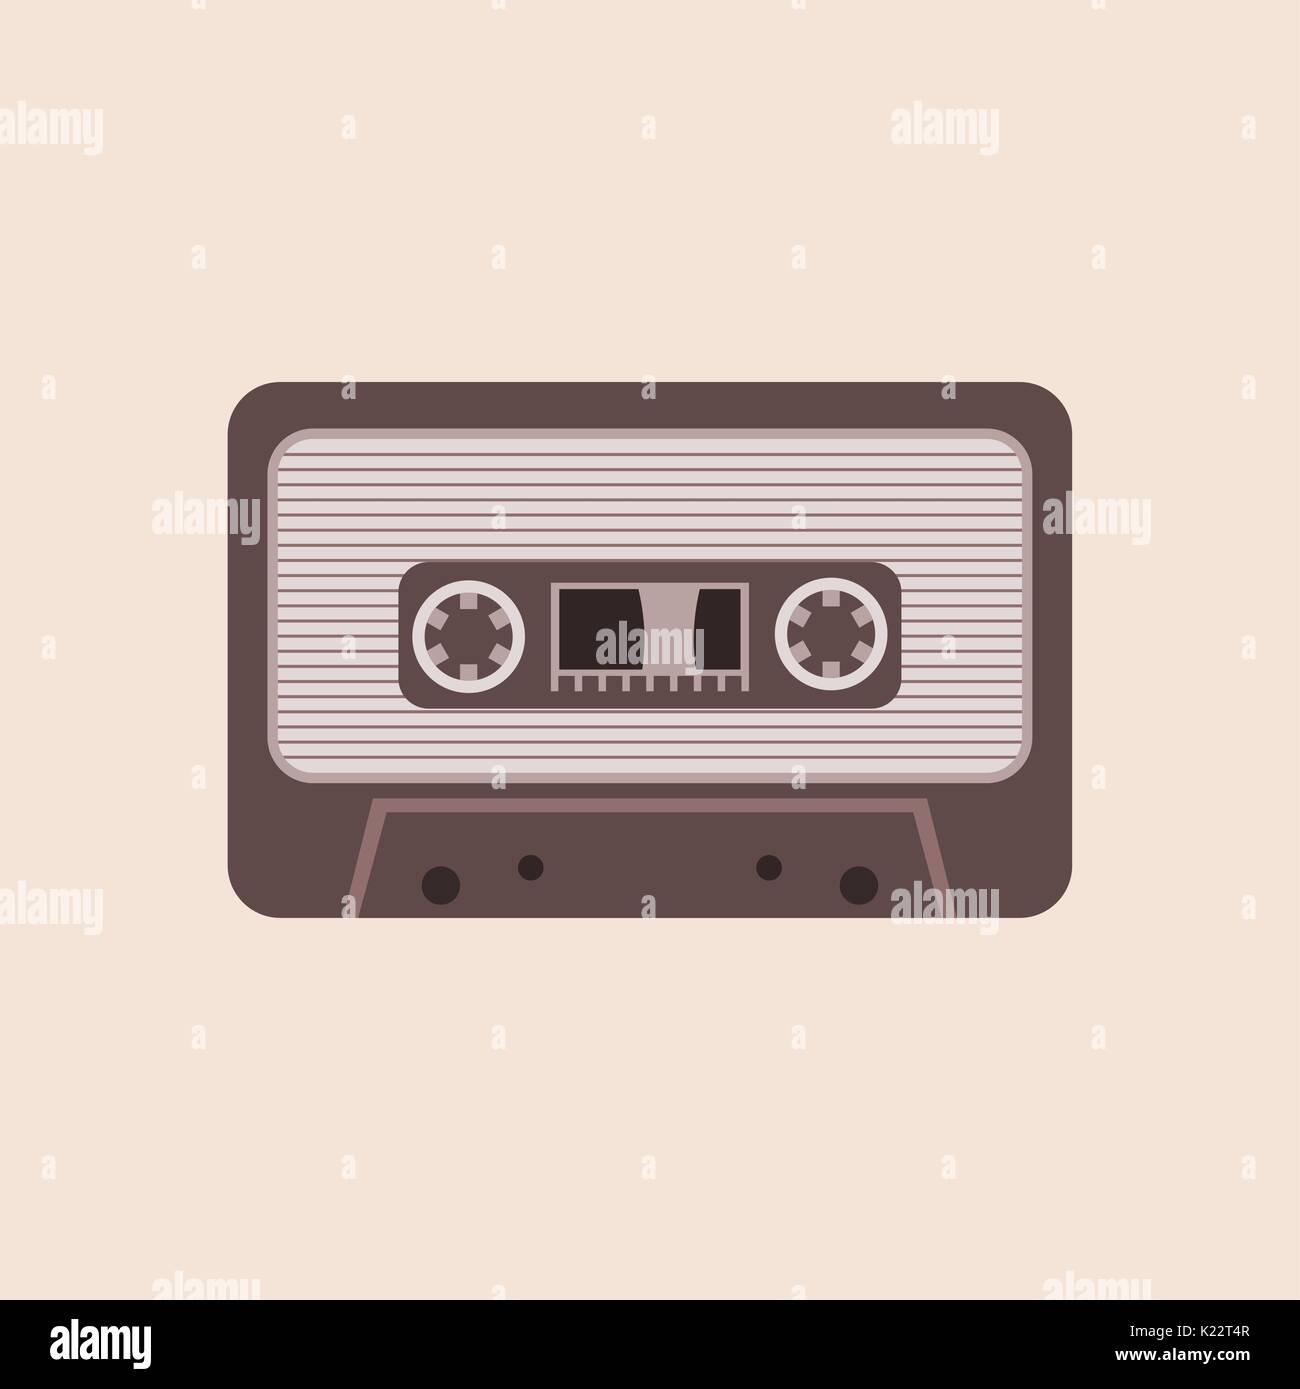 Cassette tape vector illustration on the beige background - Stock Vector